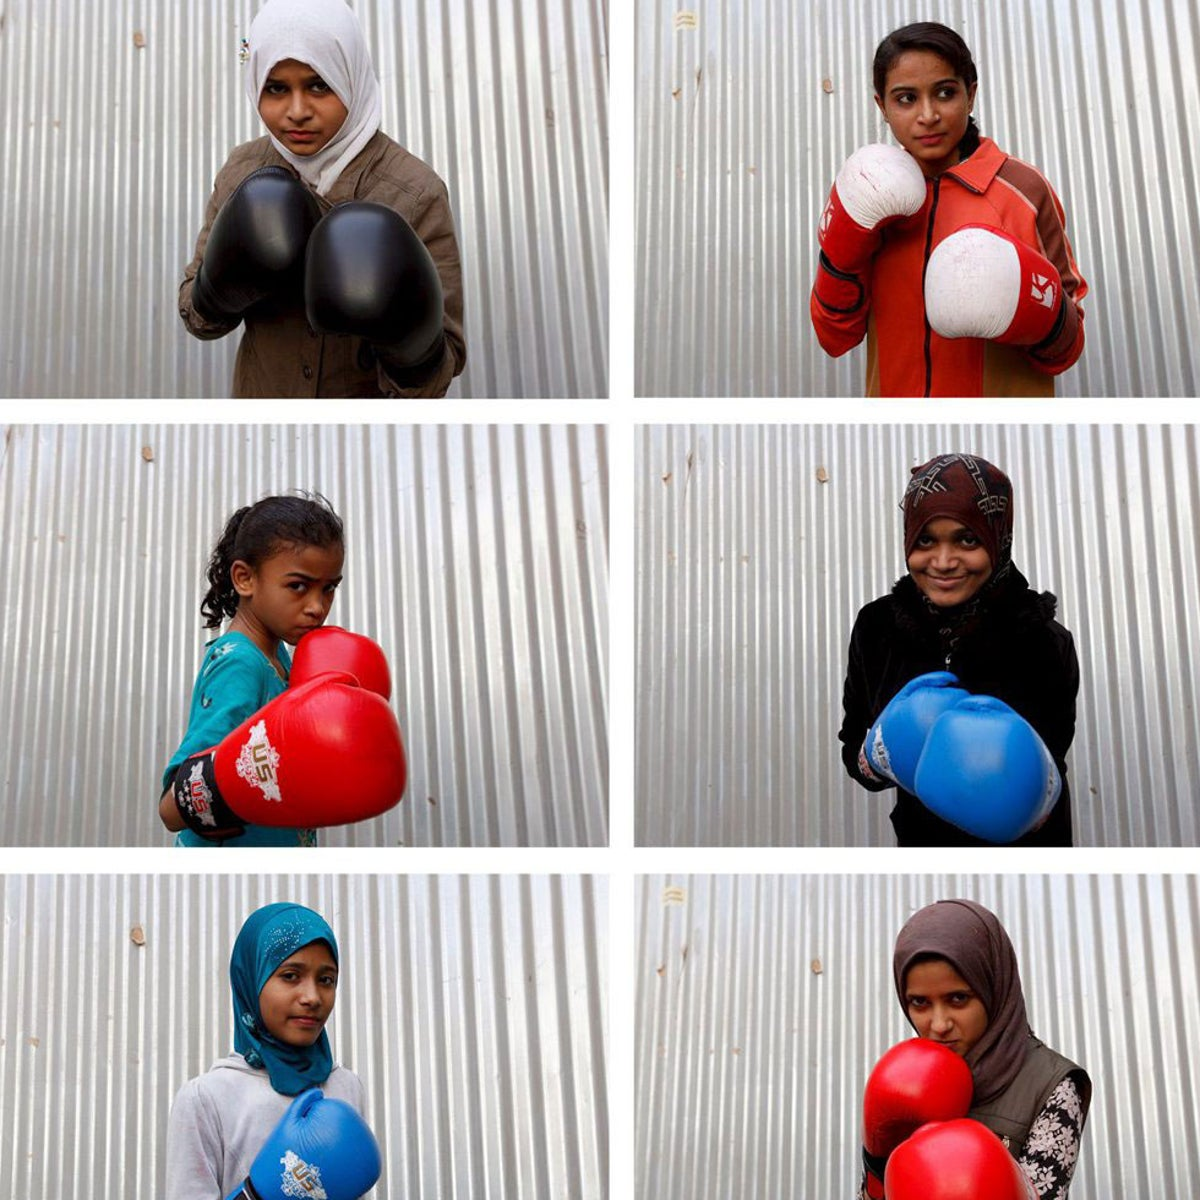 Students of coach Younus Qambrani posing with their boxing gloves at the first women's boxing coaching camp in Pak Shaheen Boxing Club in Karachi, Pakistan, February 20, 2016.